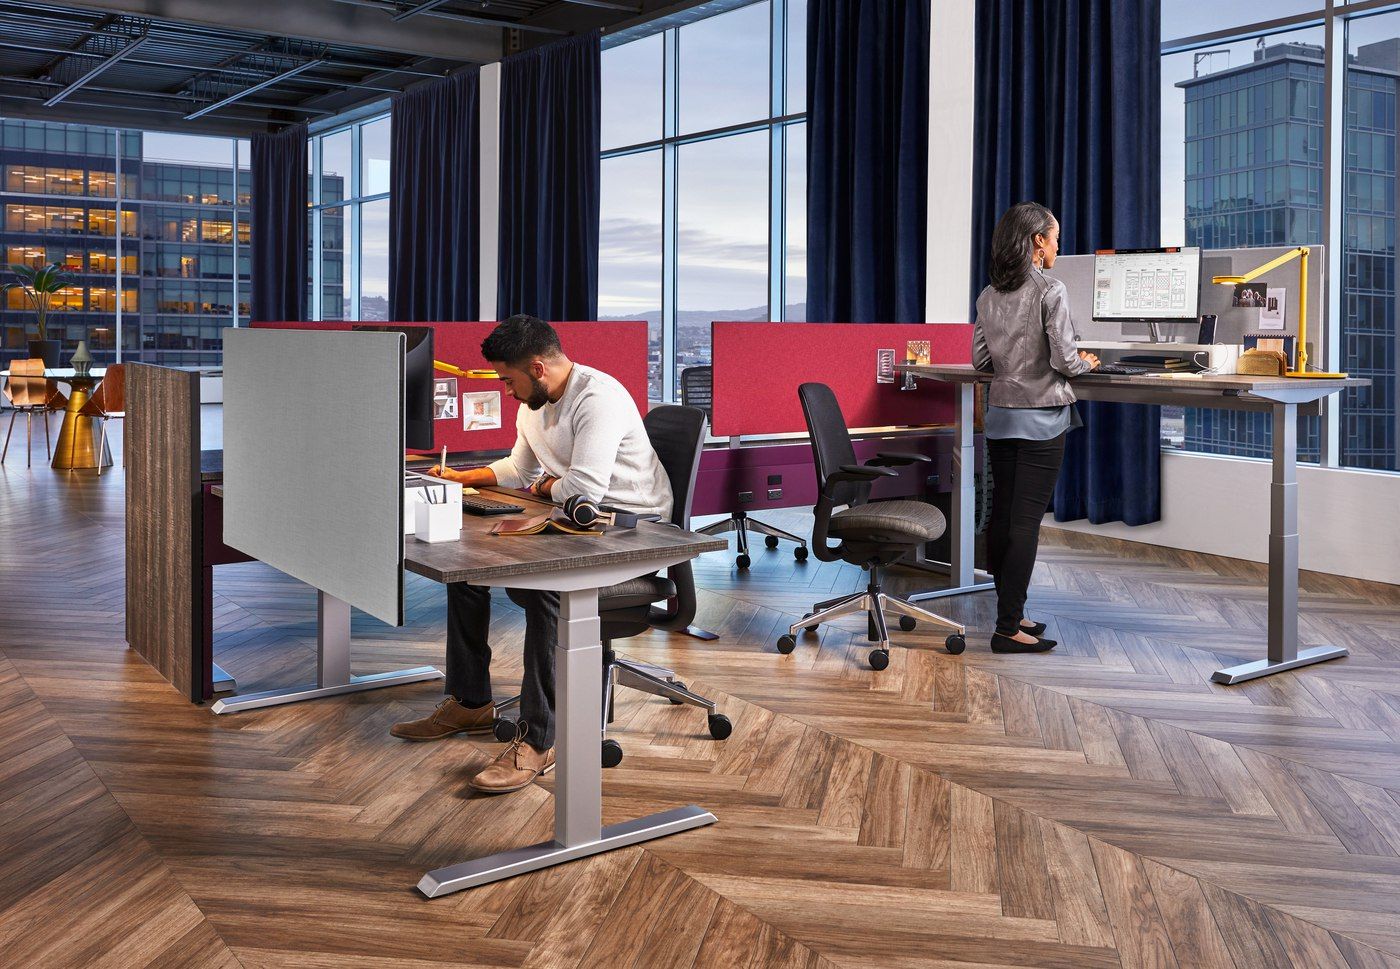 Take a Stand: Should You Use Sit-Stand Desks in Your Office?